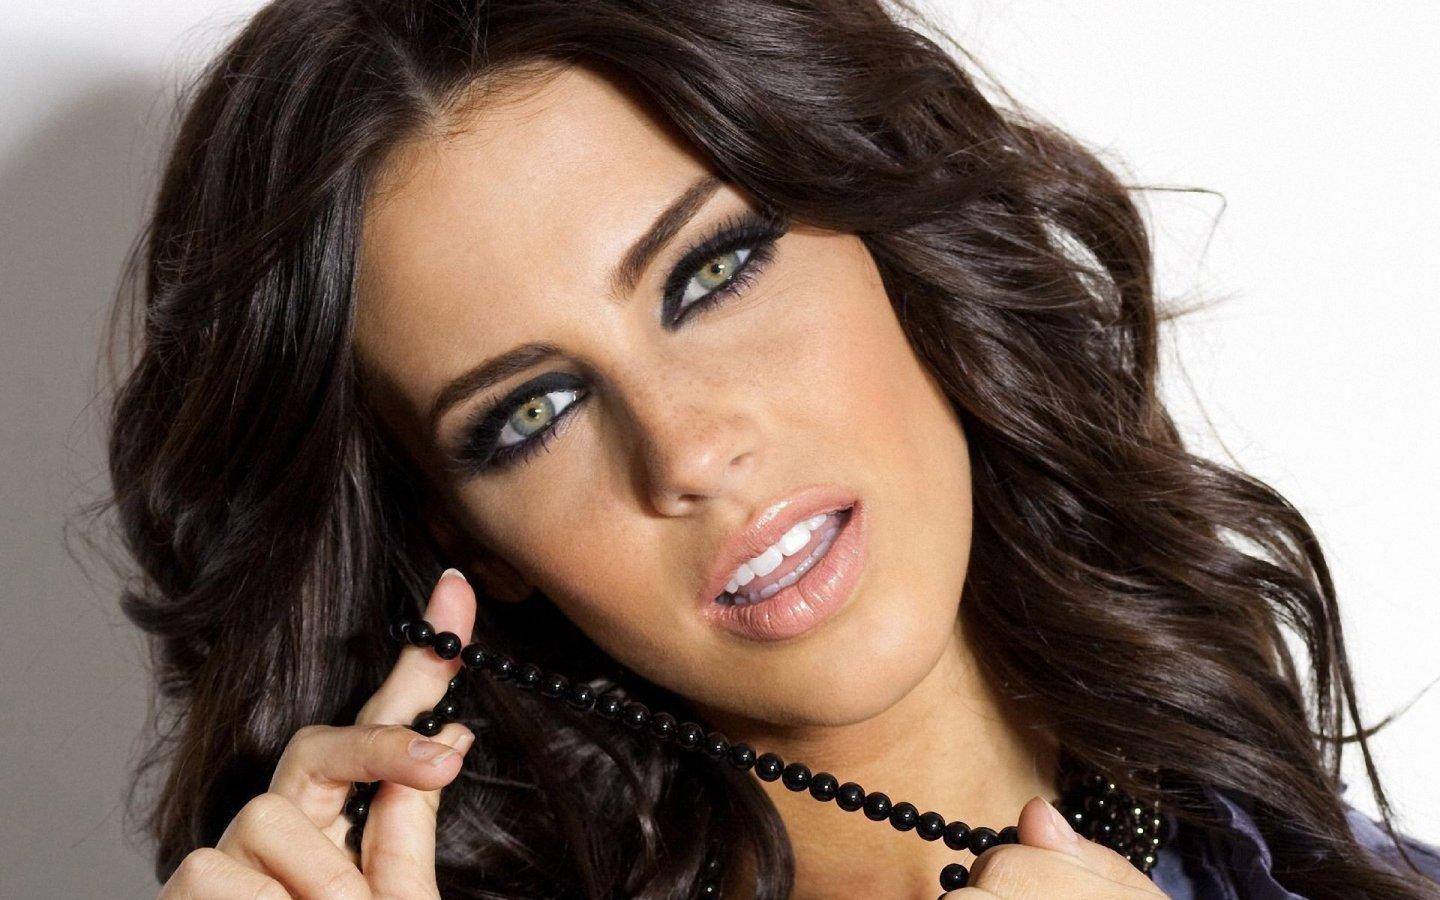 1440x900 - Jessica Lowndes Wallpapers 20